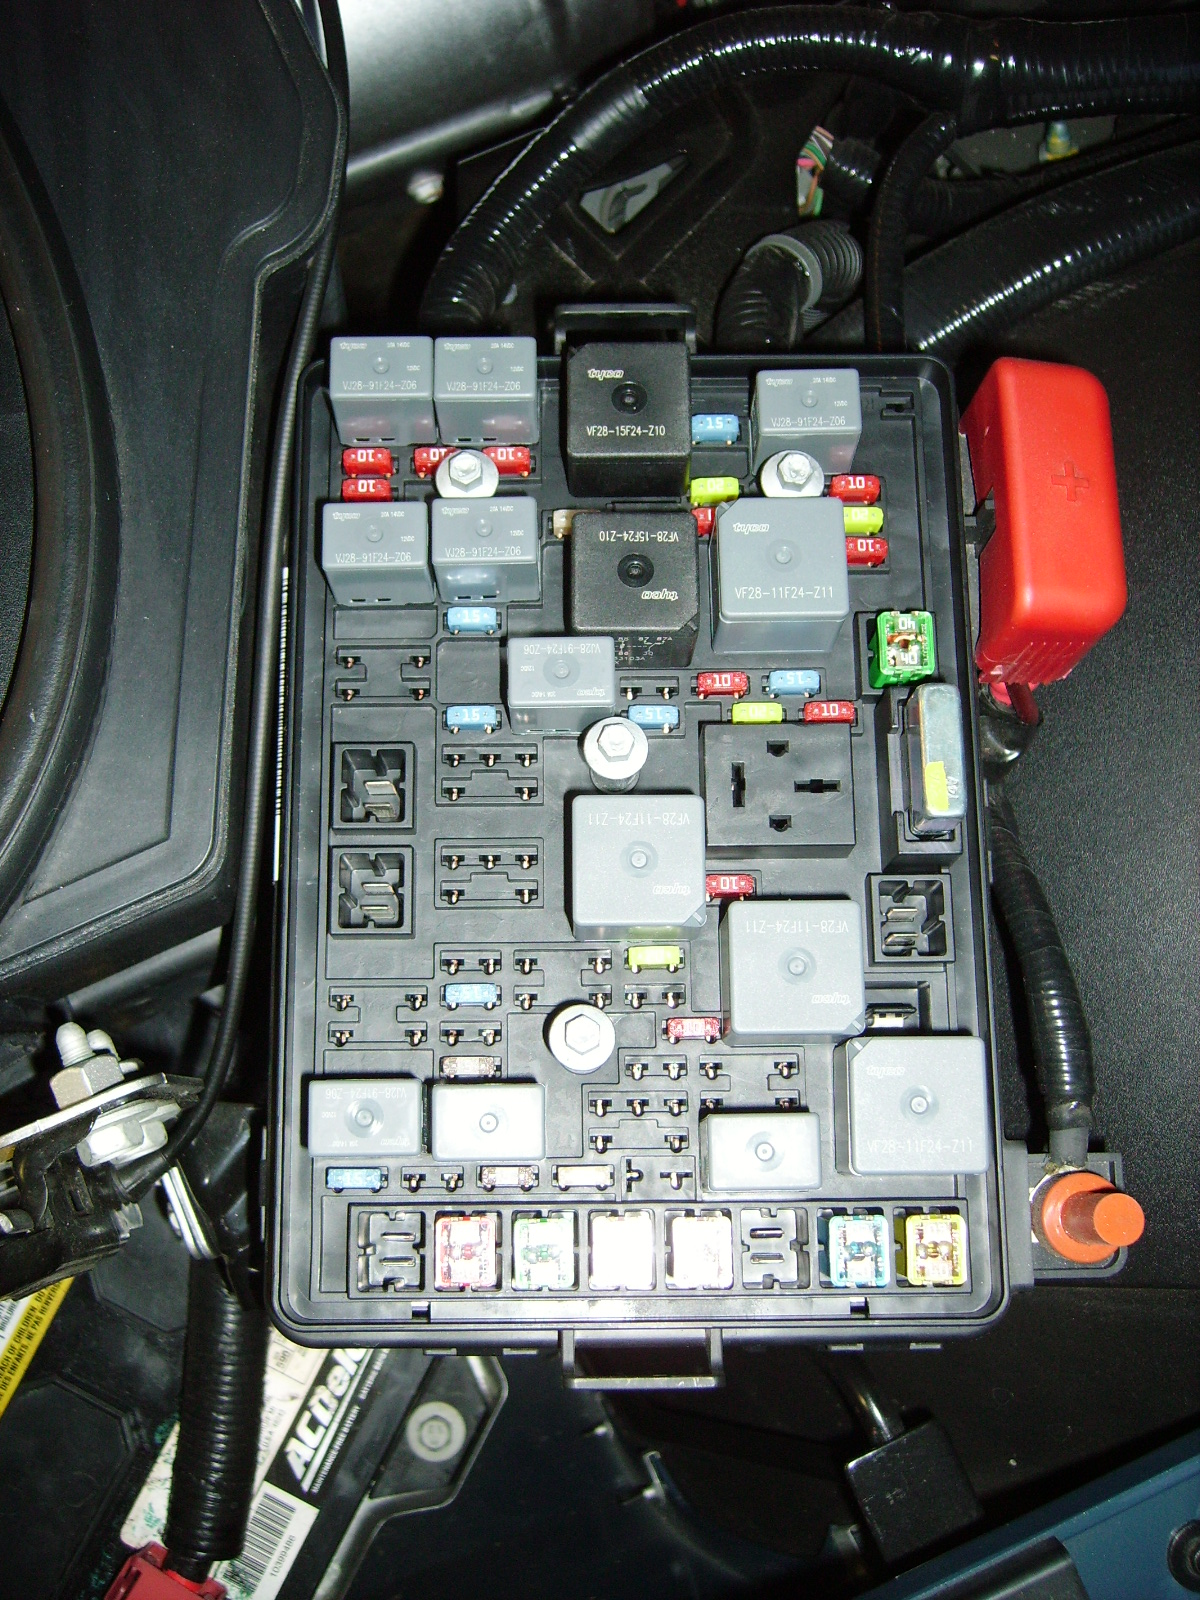 2008 Jeep Commander Interior Fuse Box Diagram Wiring Library Subaru Legacy Patriot Location Diy Enthusiasts Diagrams